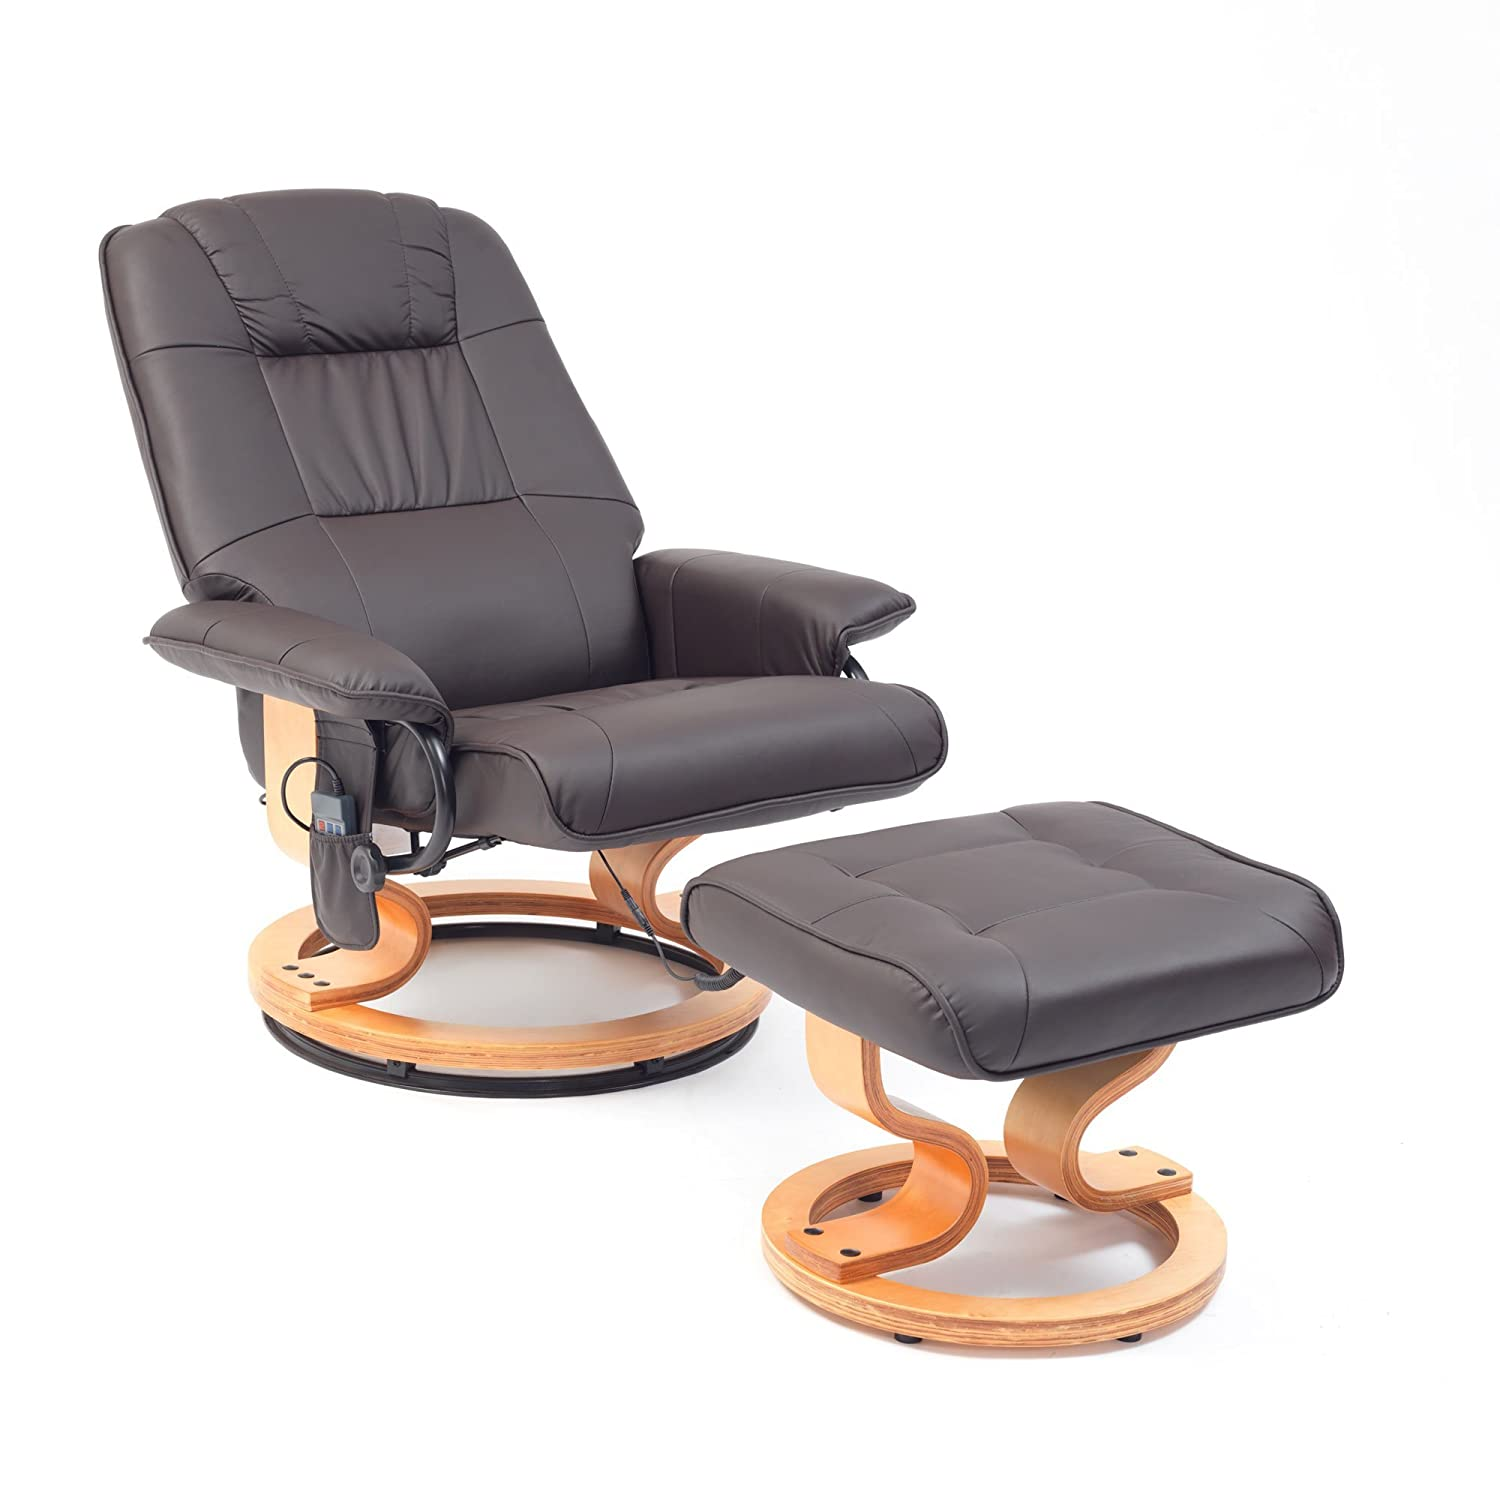 Heartwood Heat and Massage Chair with Free Stool Brown Amazon